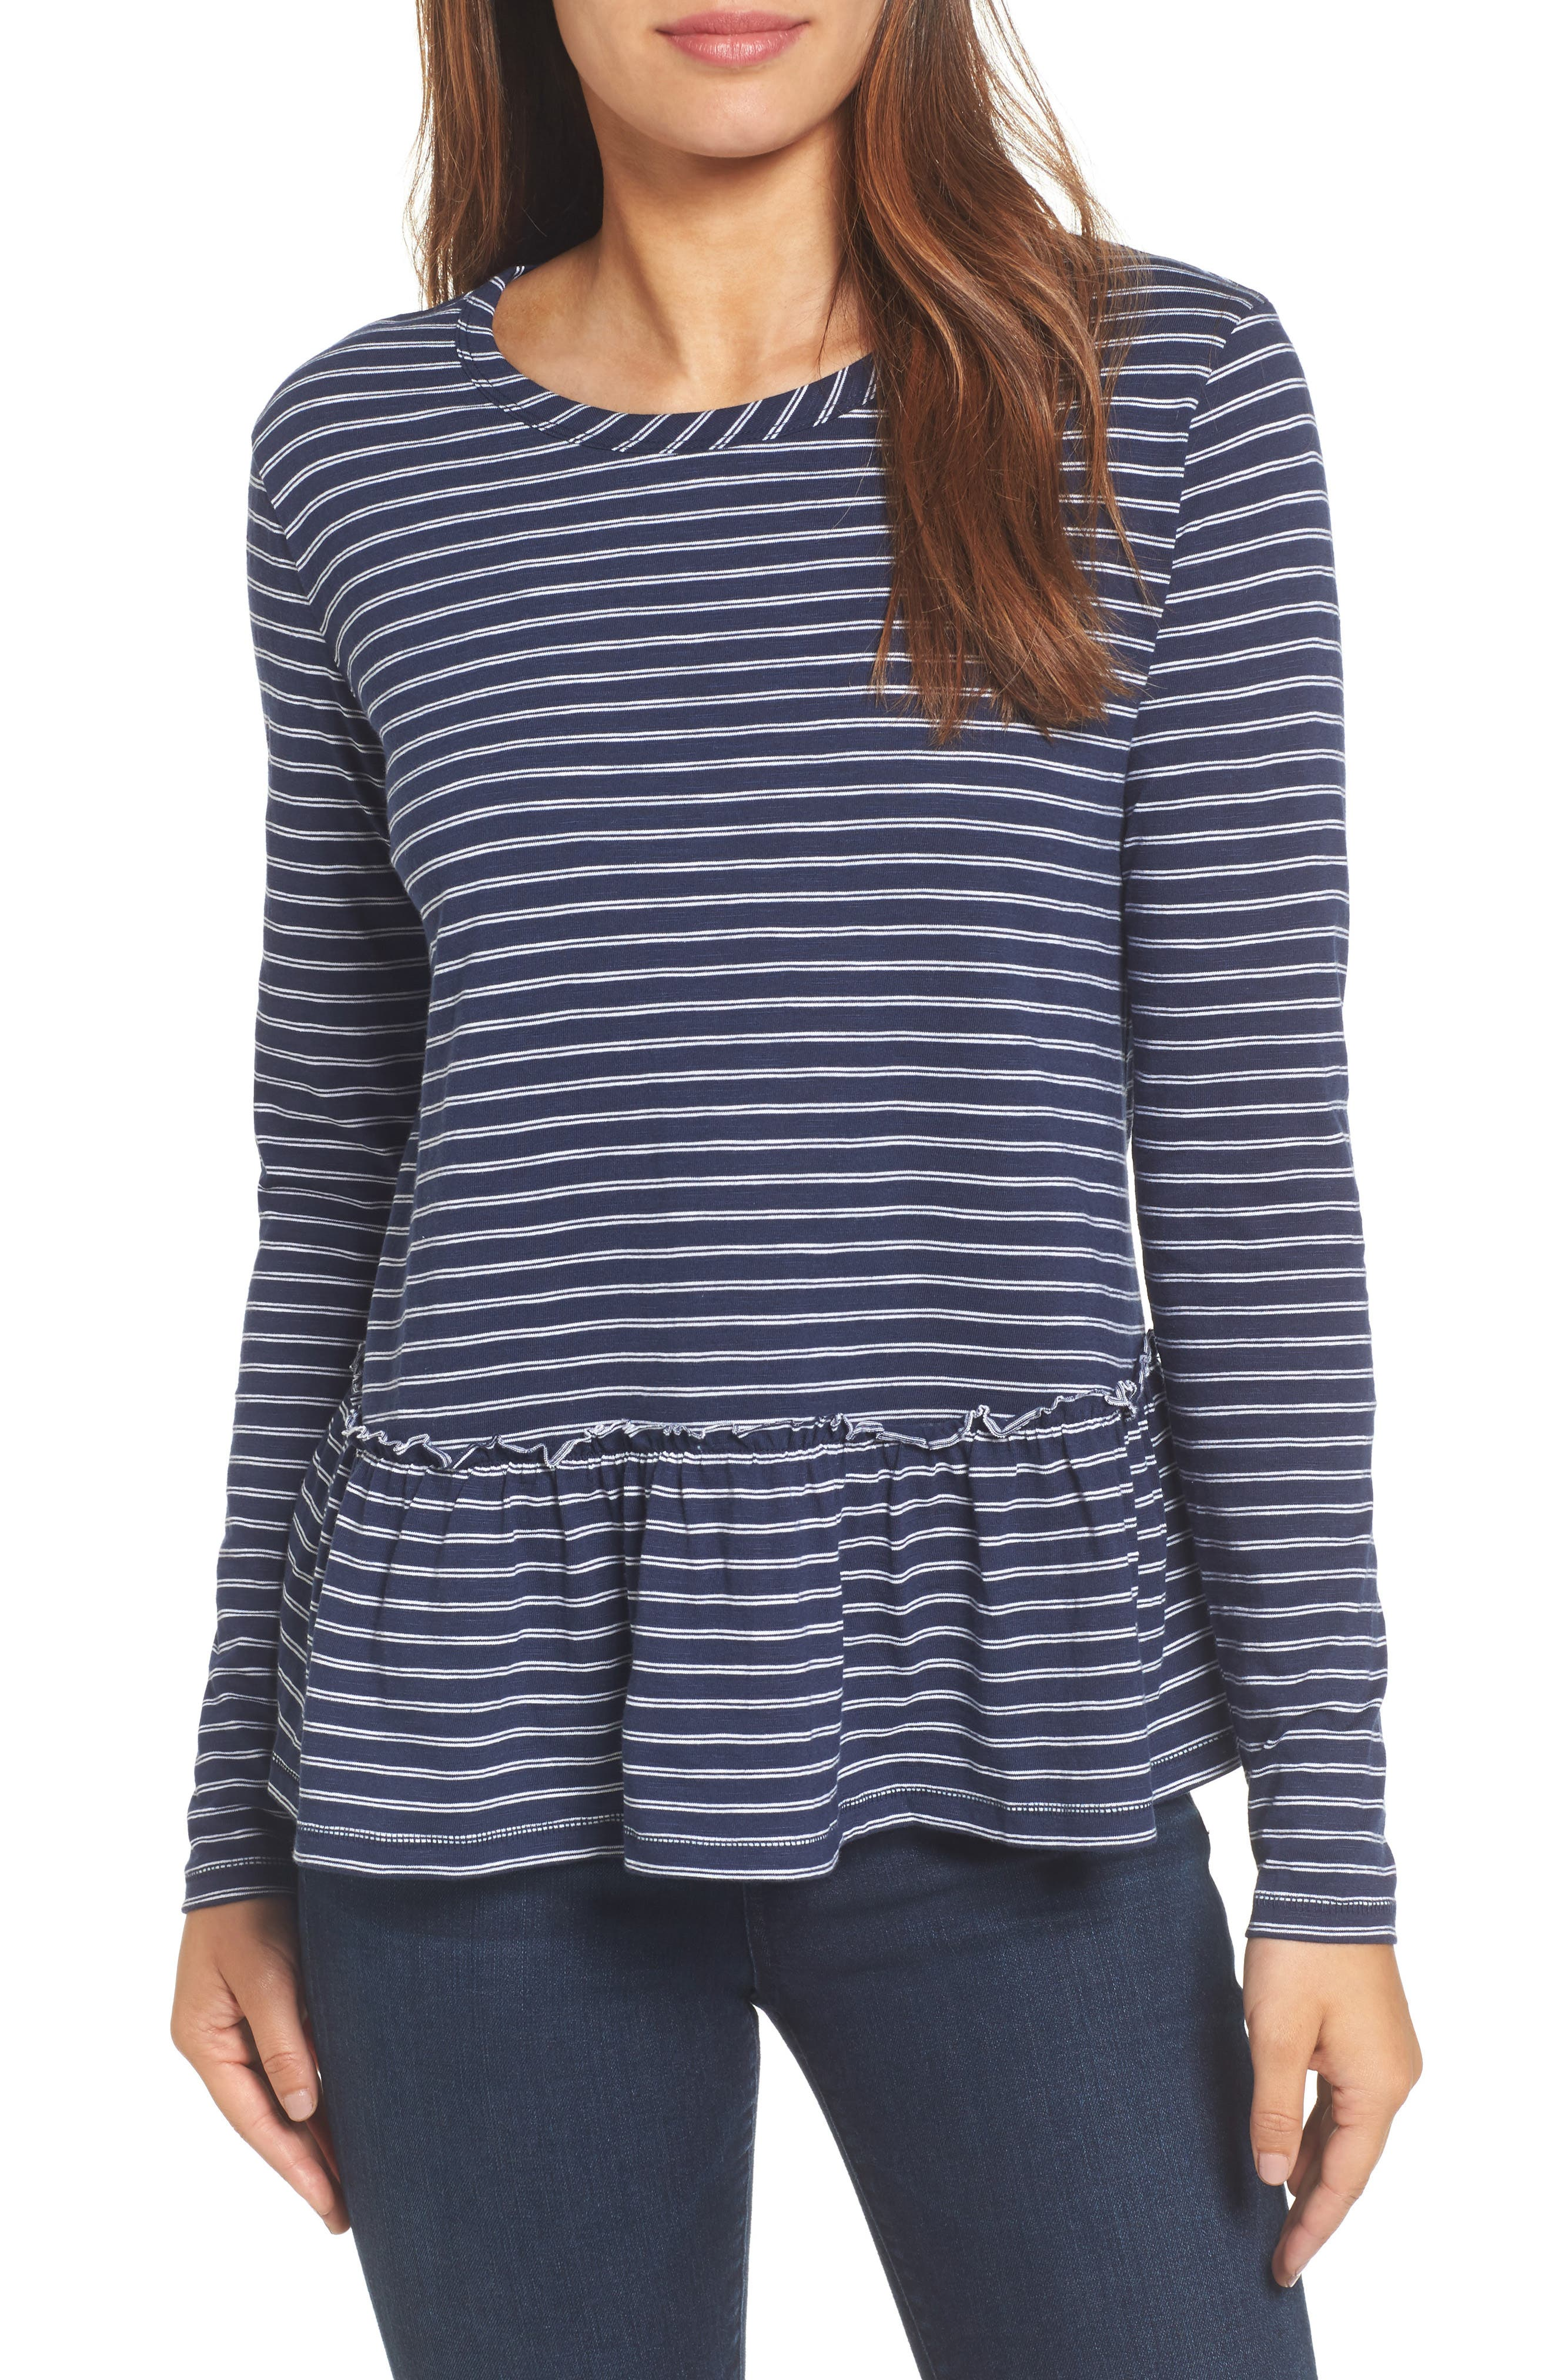 Peplum Tee,                         Main,                         color, Navy- White Double Stripe